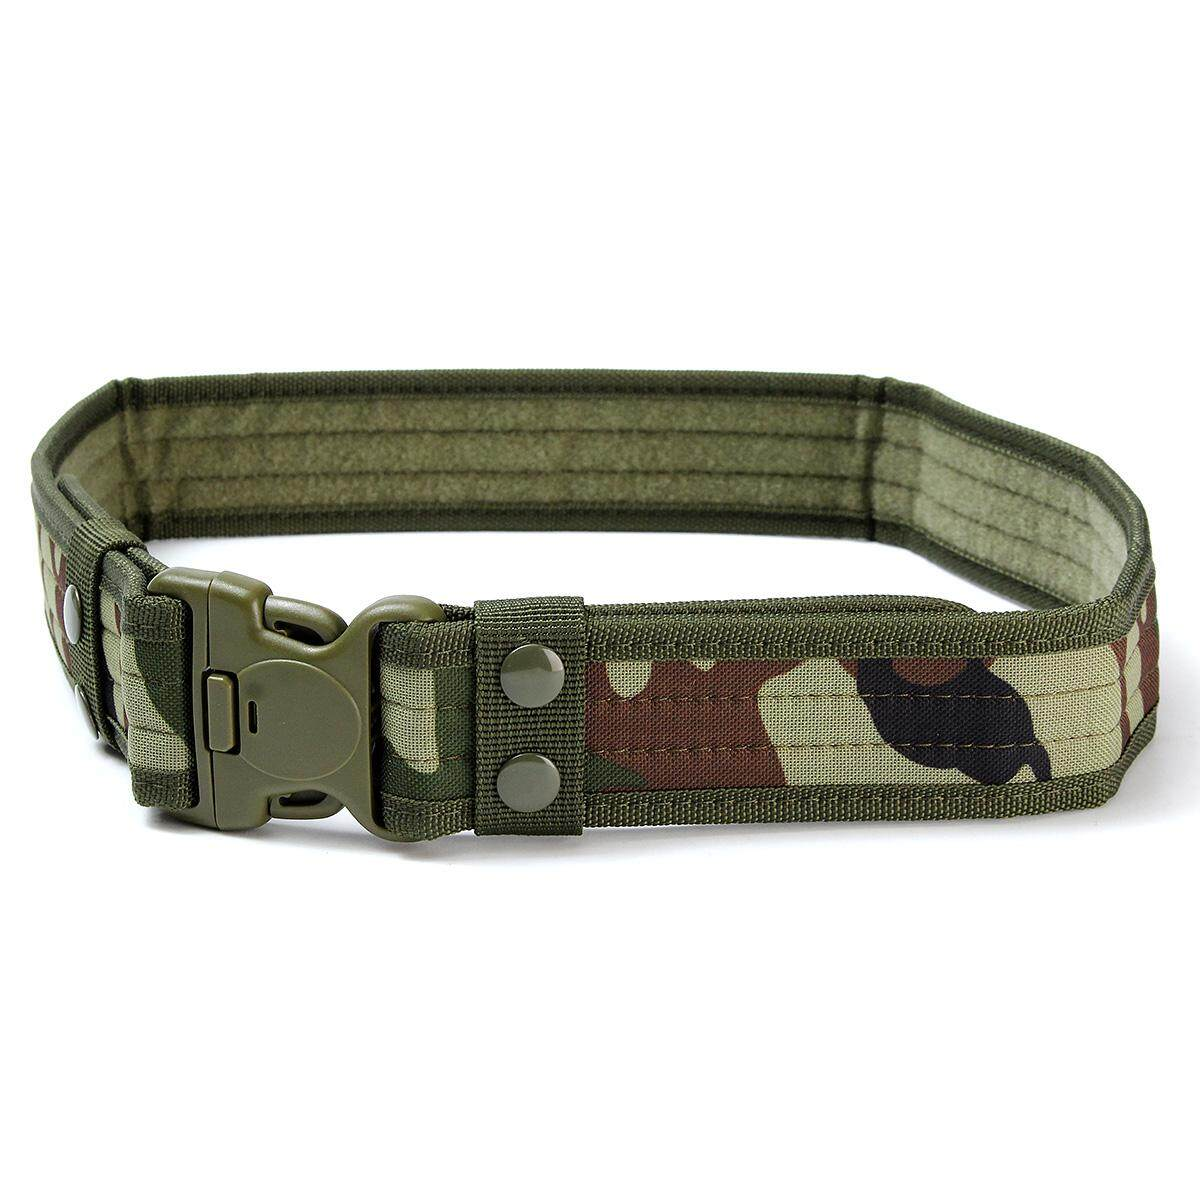 Fitur Celana Panjang Blackhawk Hitam Tactical Outdoor Black Hawk Mens Belt Combat Train Police Duty Military Army For